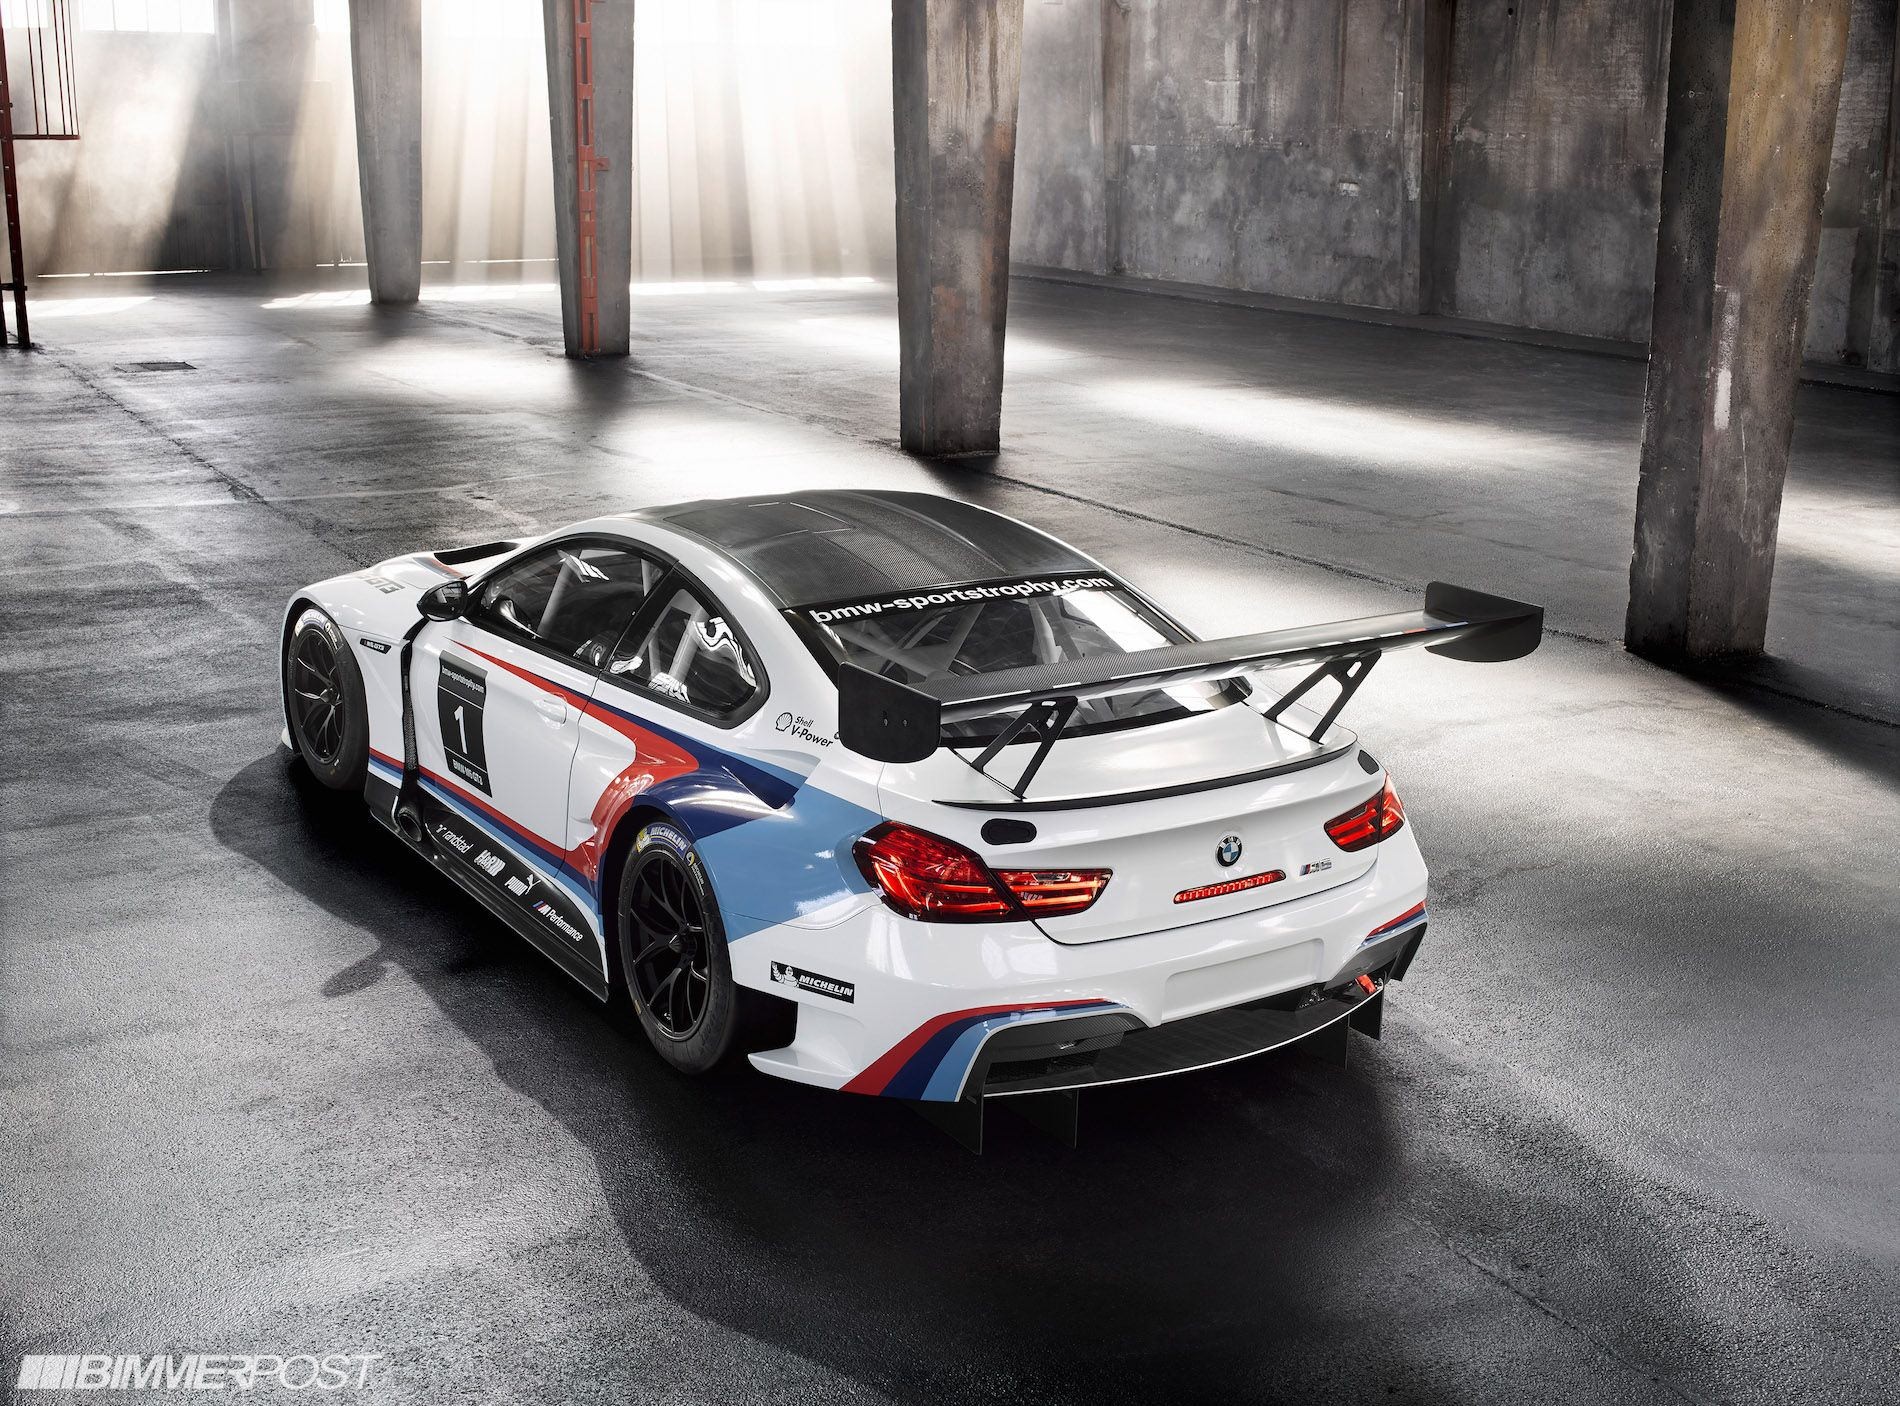 Presenting The Bmw M6 Gt3 Updated W Live Pics And Video Bmw